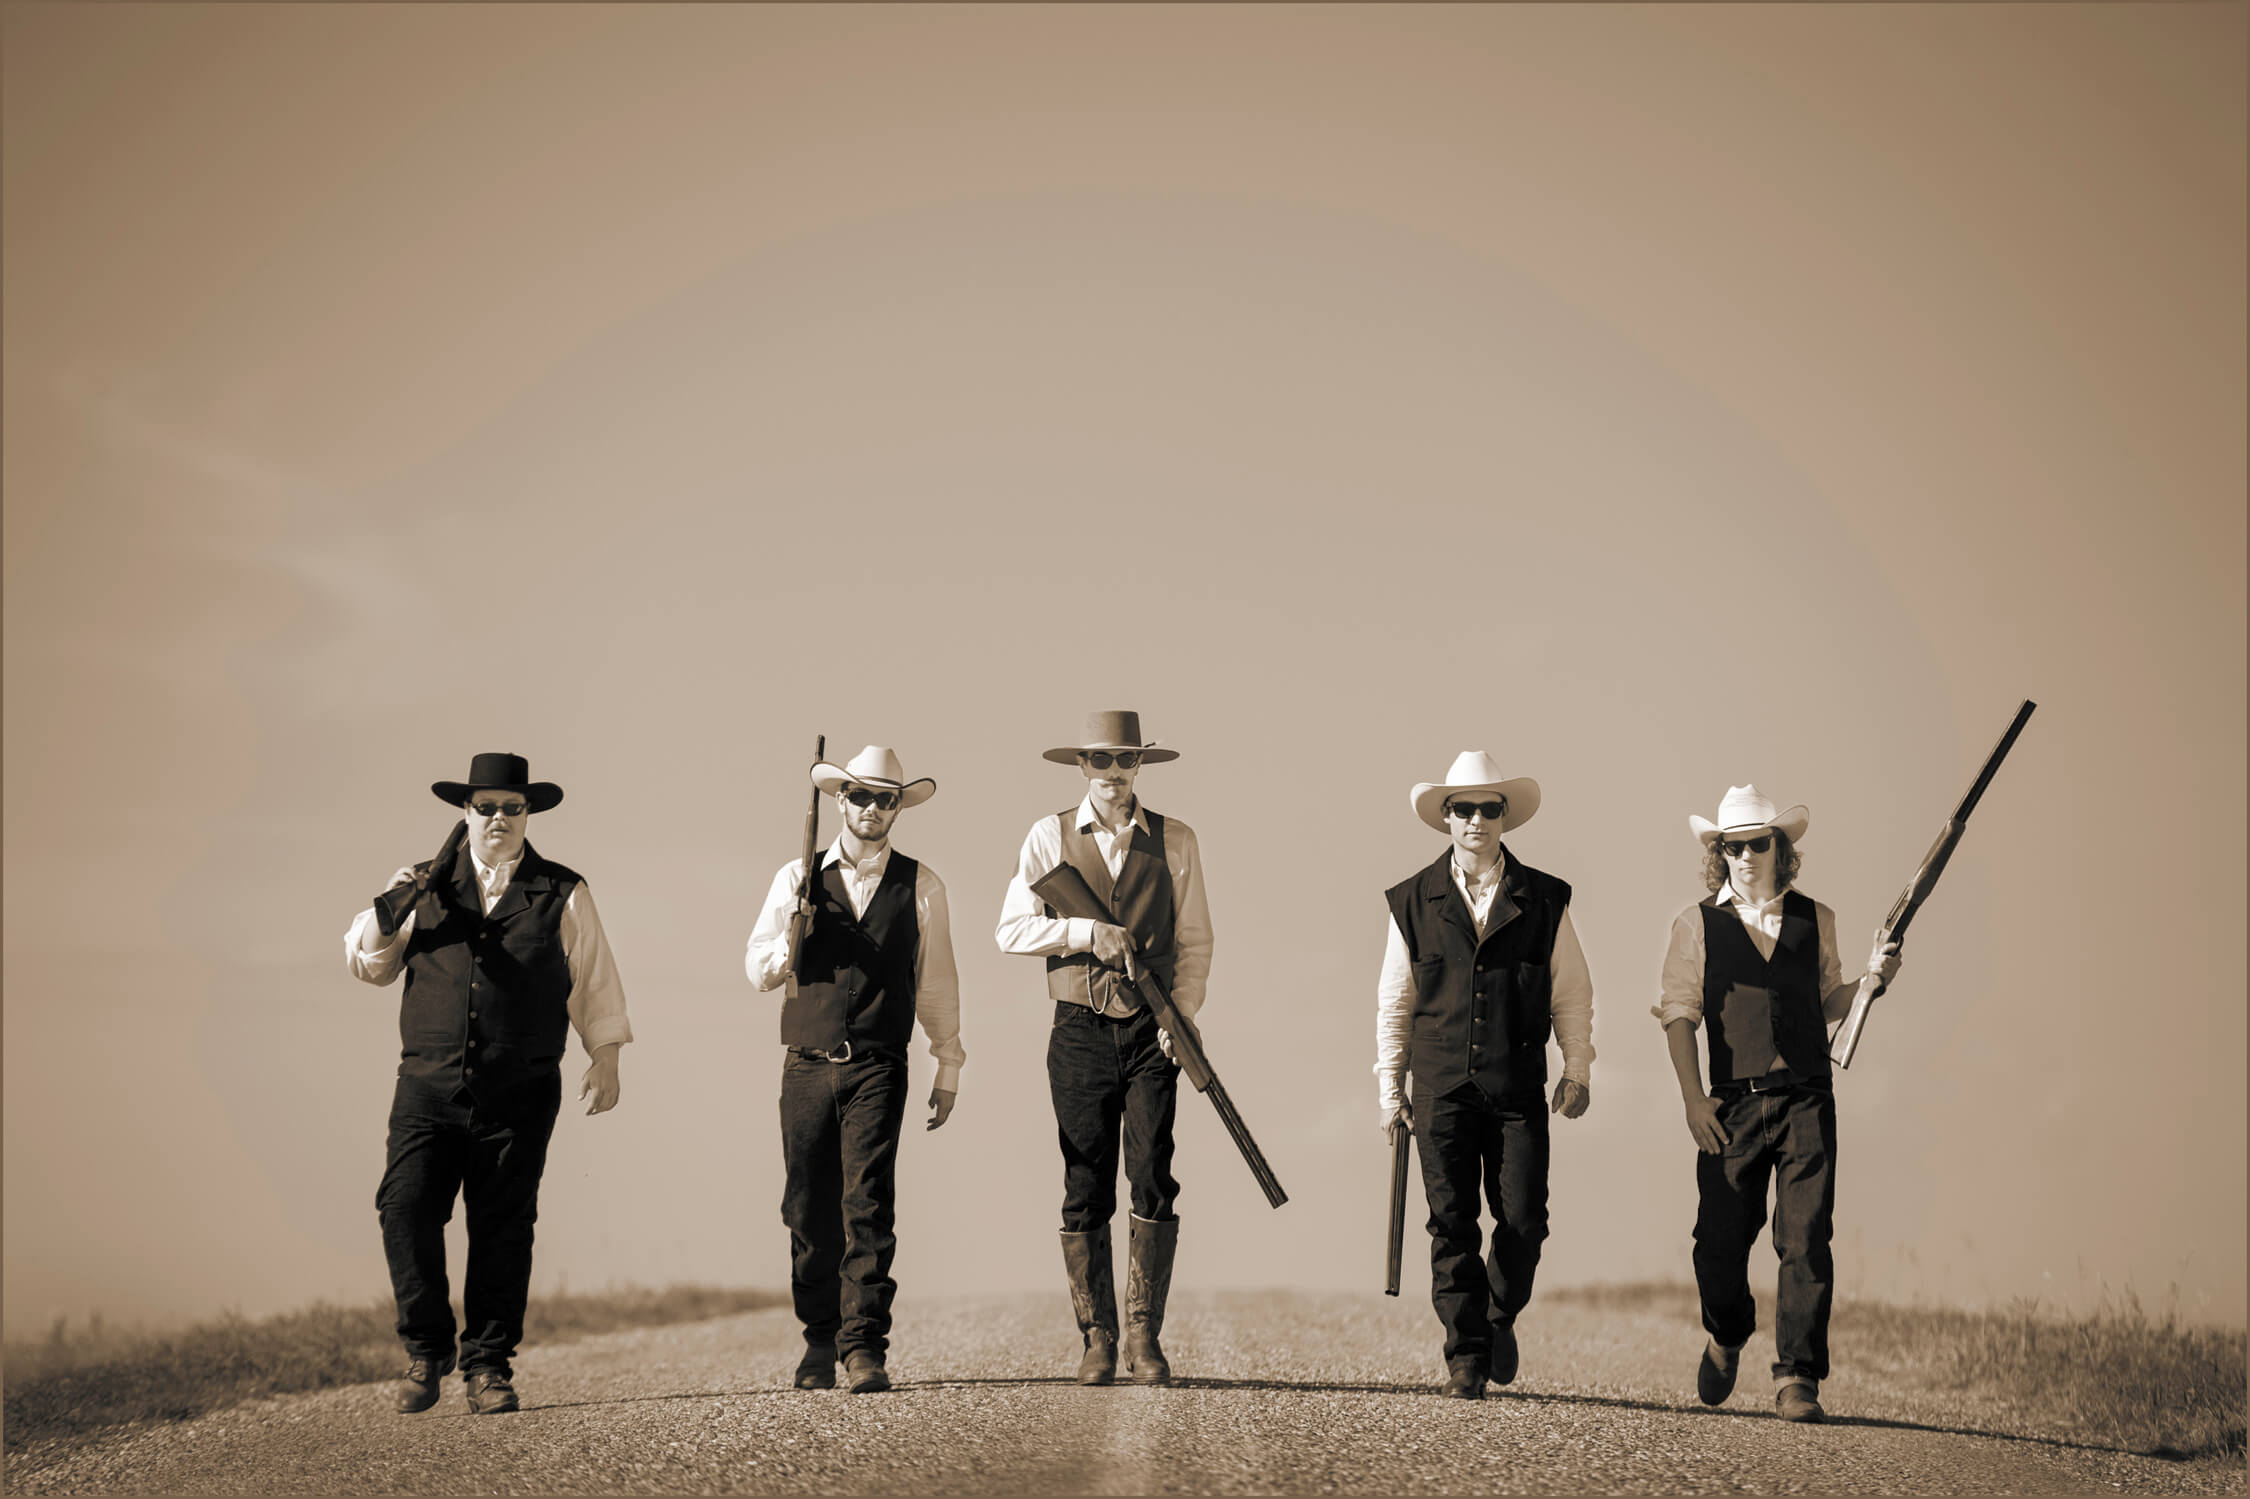 groom and groomsmen walking on open road holding guns